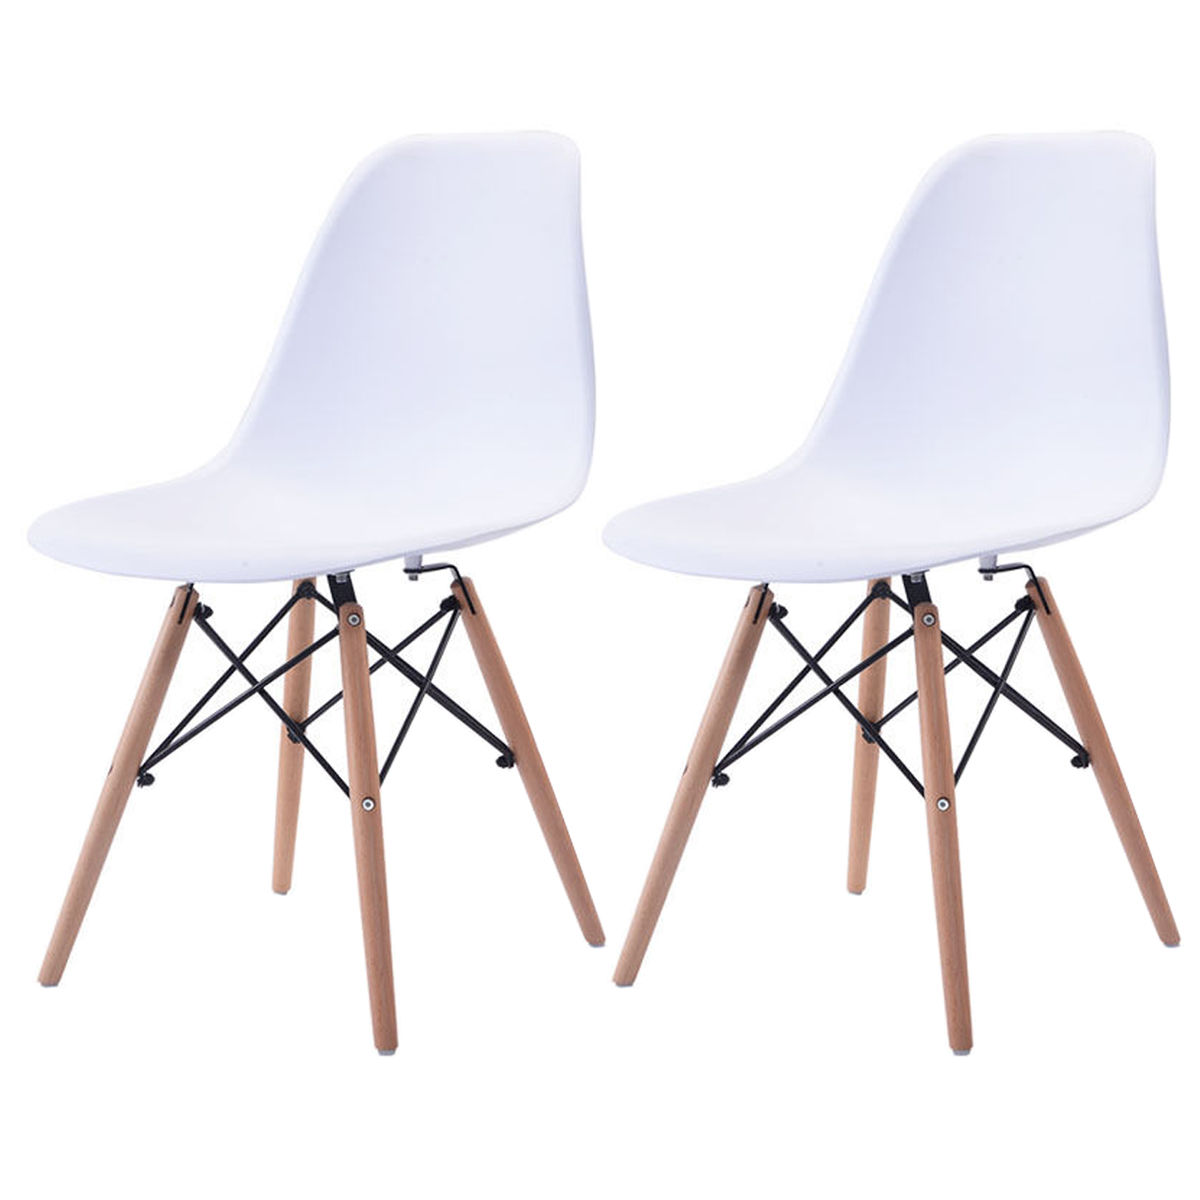 Us 64 99 Giantex Set Of 2pcs Mid Century Dining Chair Modern Wood Legs Side Chairs White Living Room Furniture Hw58931wh 2 In Dining Chairs From